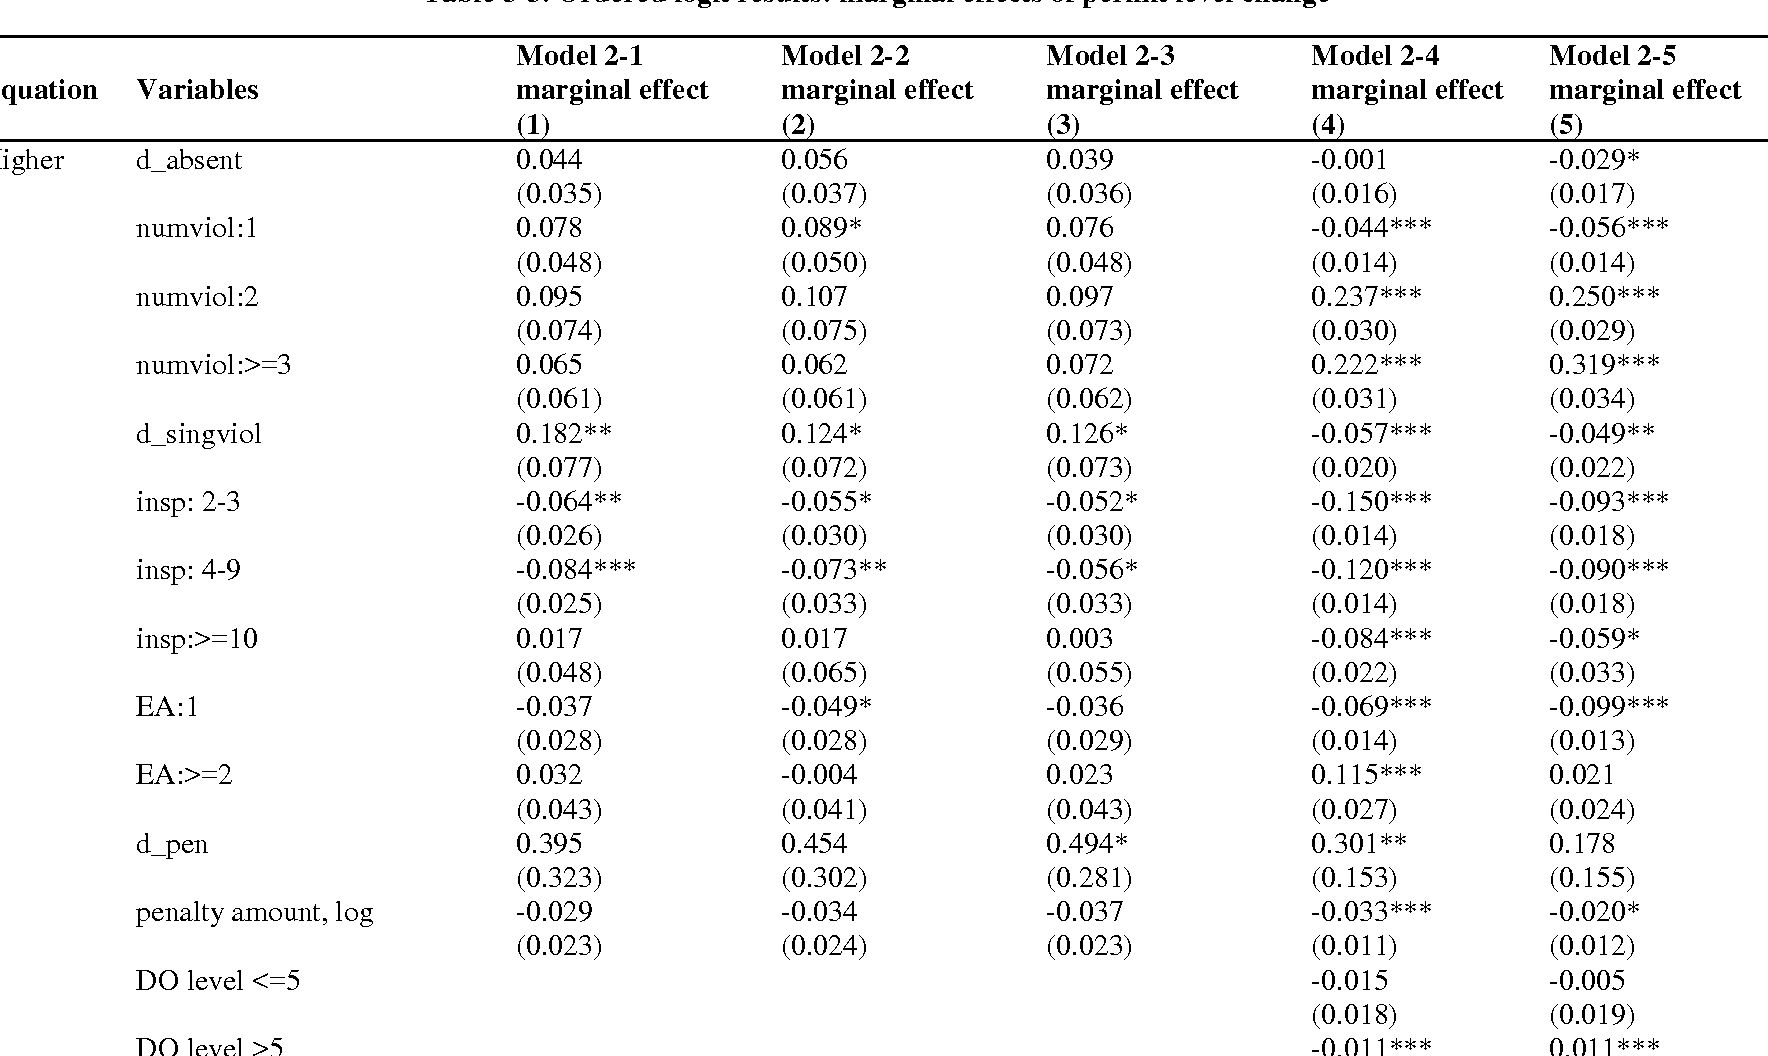 Table 3-3. Ordered logit results: marginal effects of permit level change